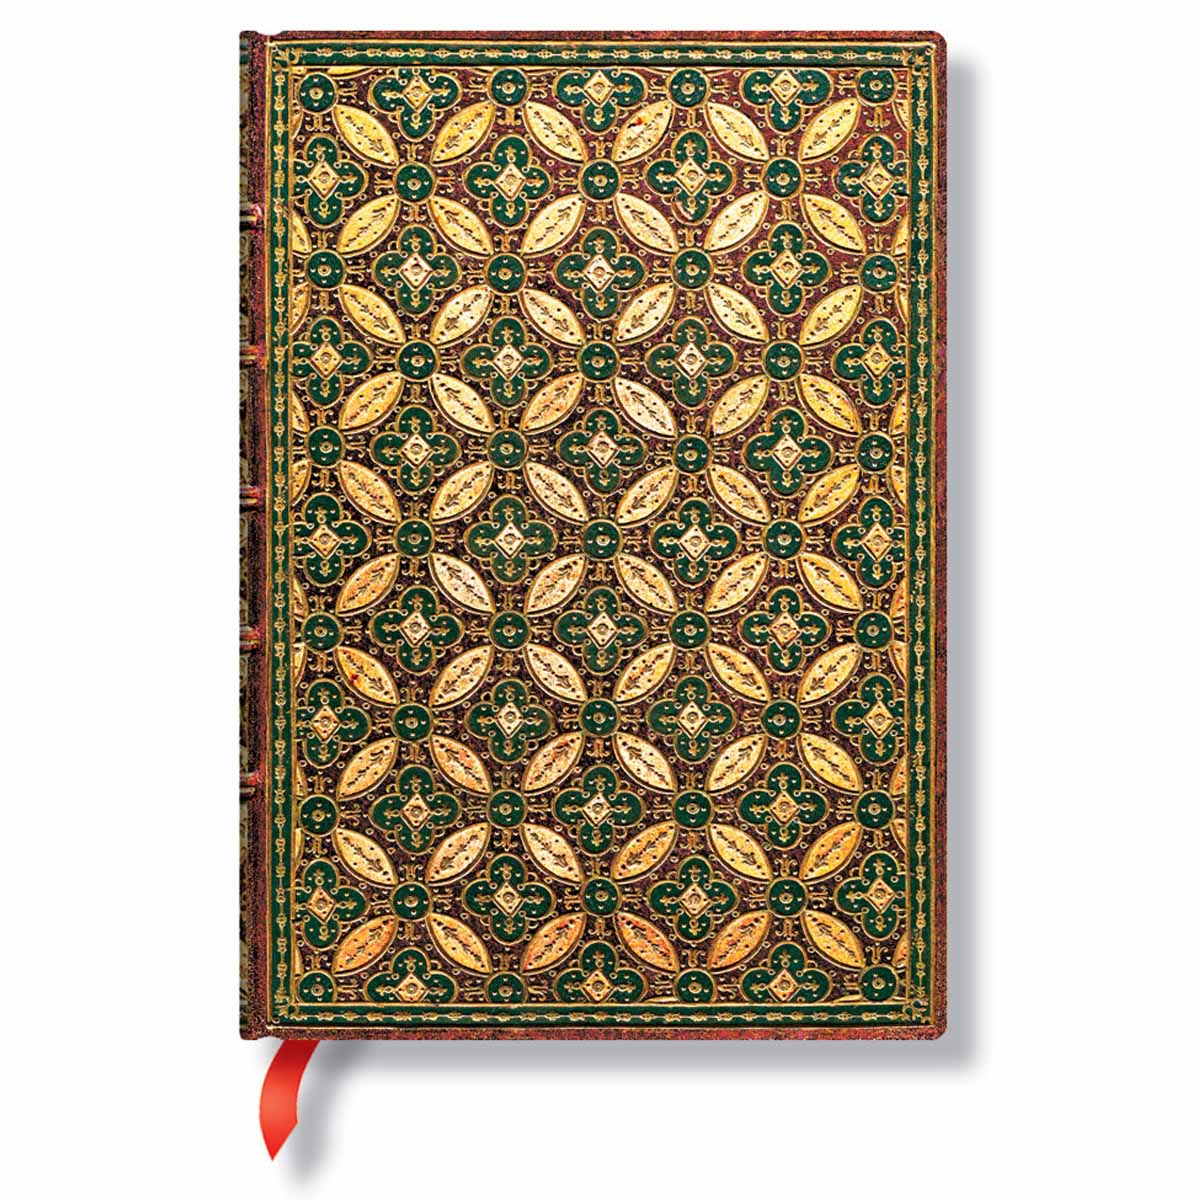 Paperblanks Parisian Mosaic Safran 5 x 7 Inch Midi Journal